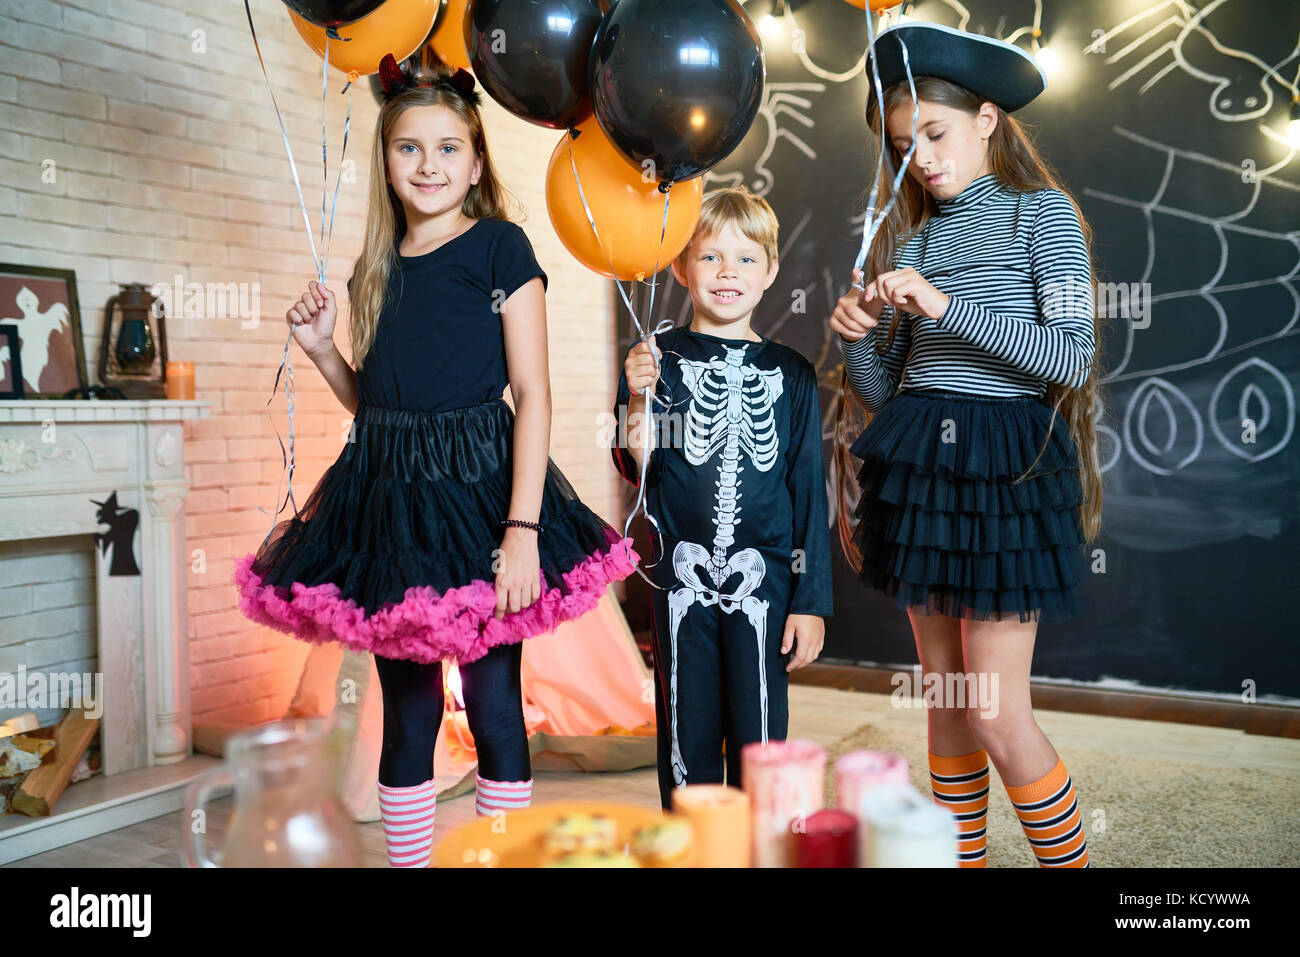 Group portrait of smiling little friends wearing fancy costumes holding bunches of balloons in hands while posing - Stock Image